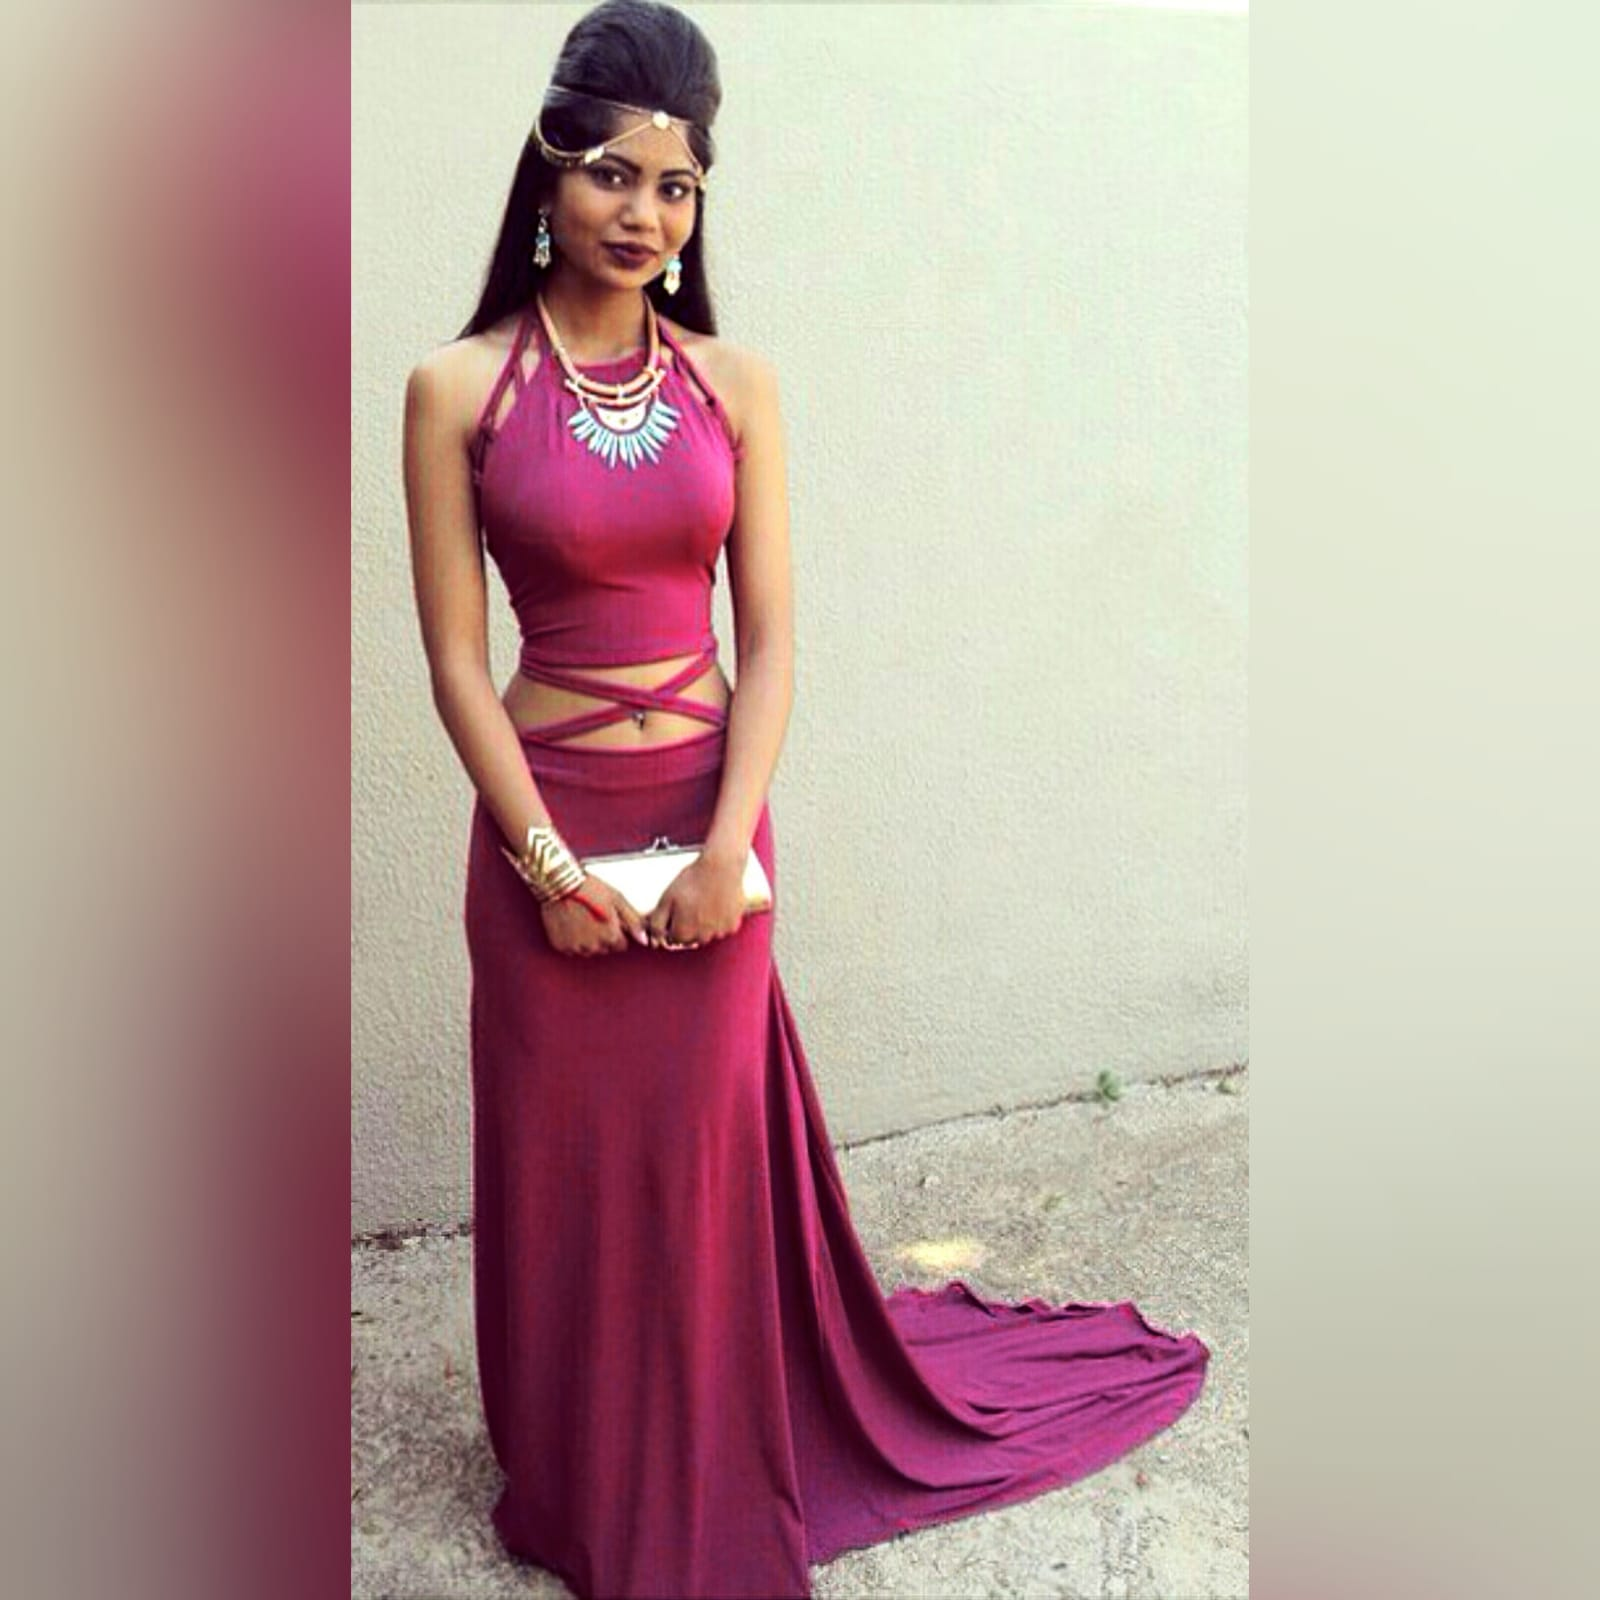 2 piece plum prom dance dress 1 2 piece plum prom dance dress. Halter neck crop top. Straps from the crop top create a cross that joins to the skirt. Skirt fitted till the hip and then very flowy with a long, wide train.